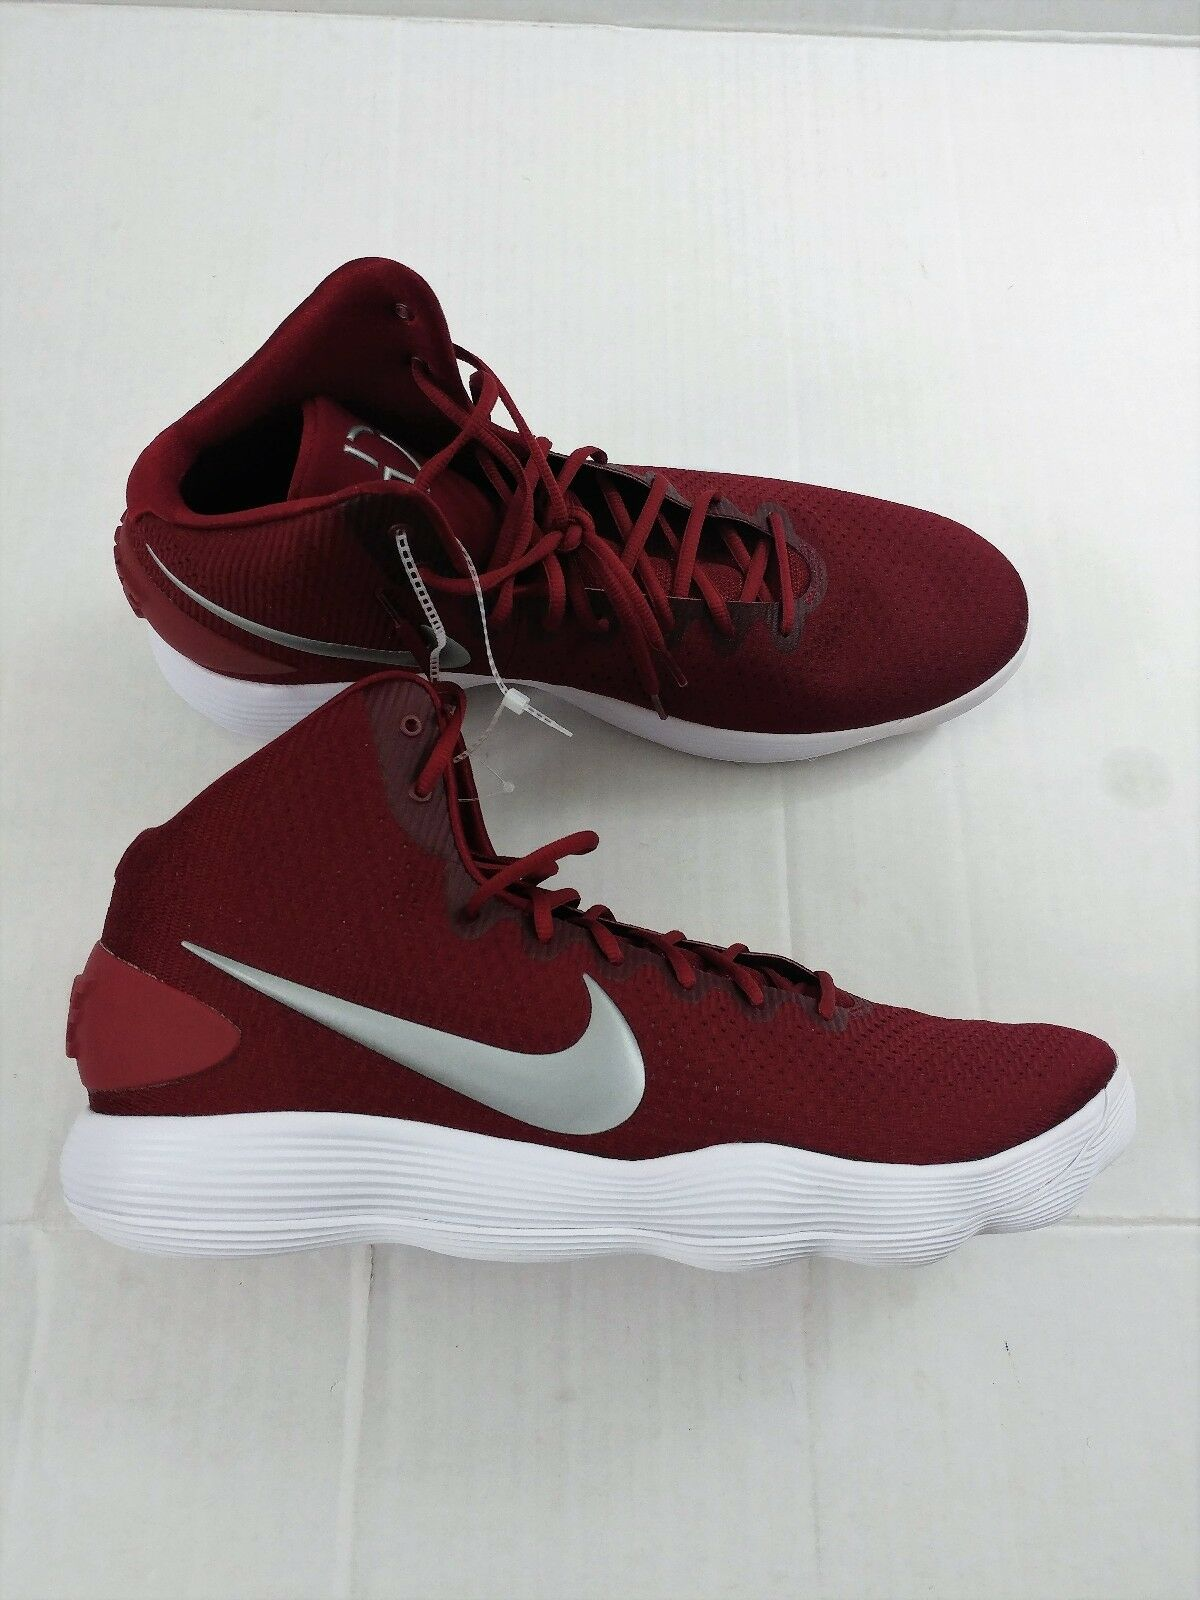 182 Nike Hyperdunk 2018 TB Men's Basketball Shoes 897808 601